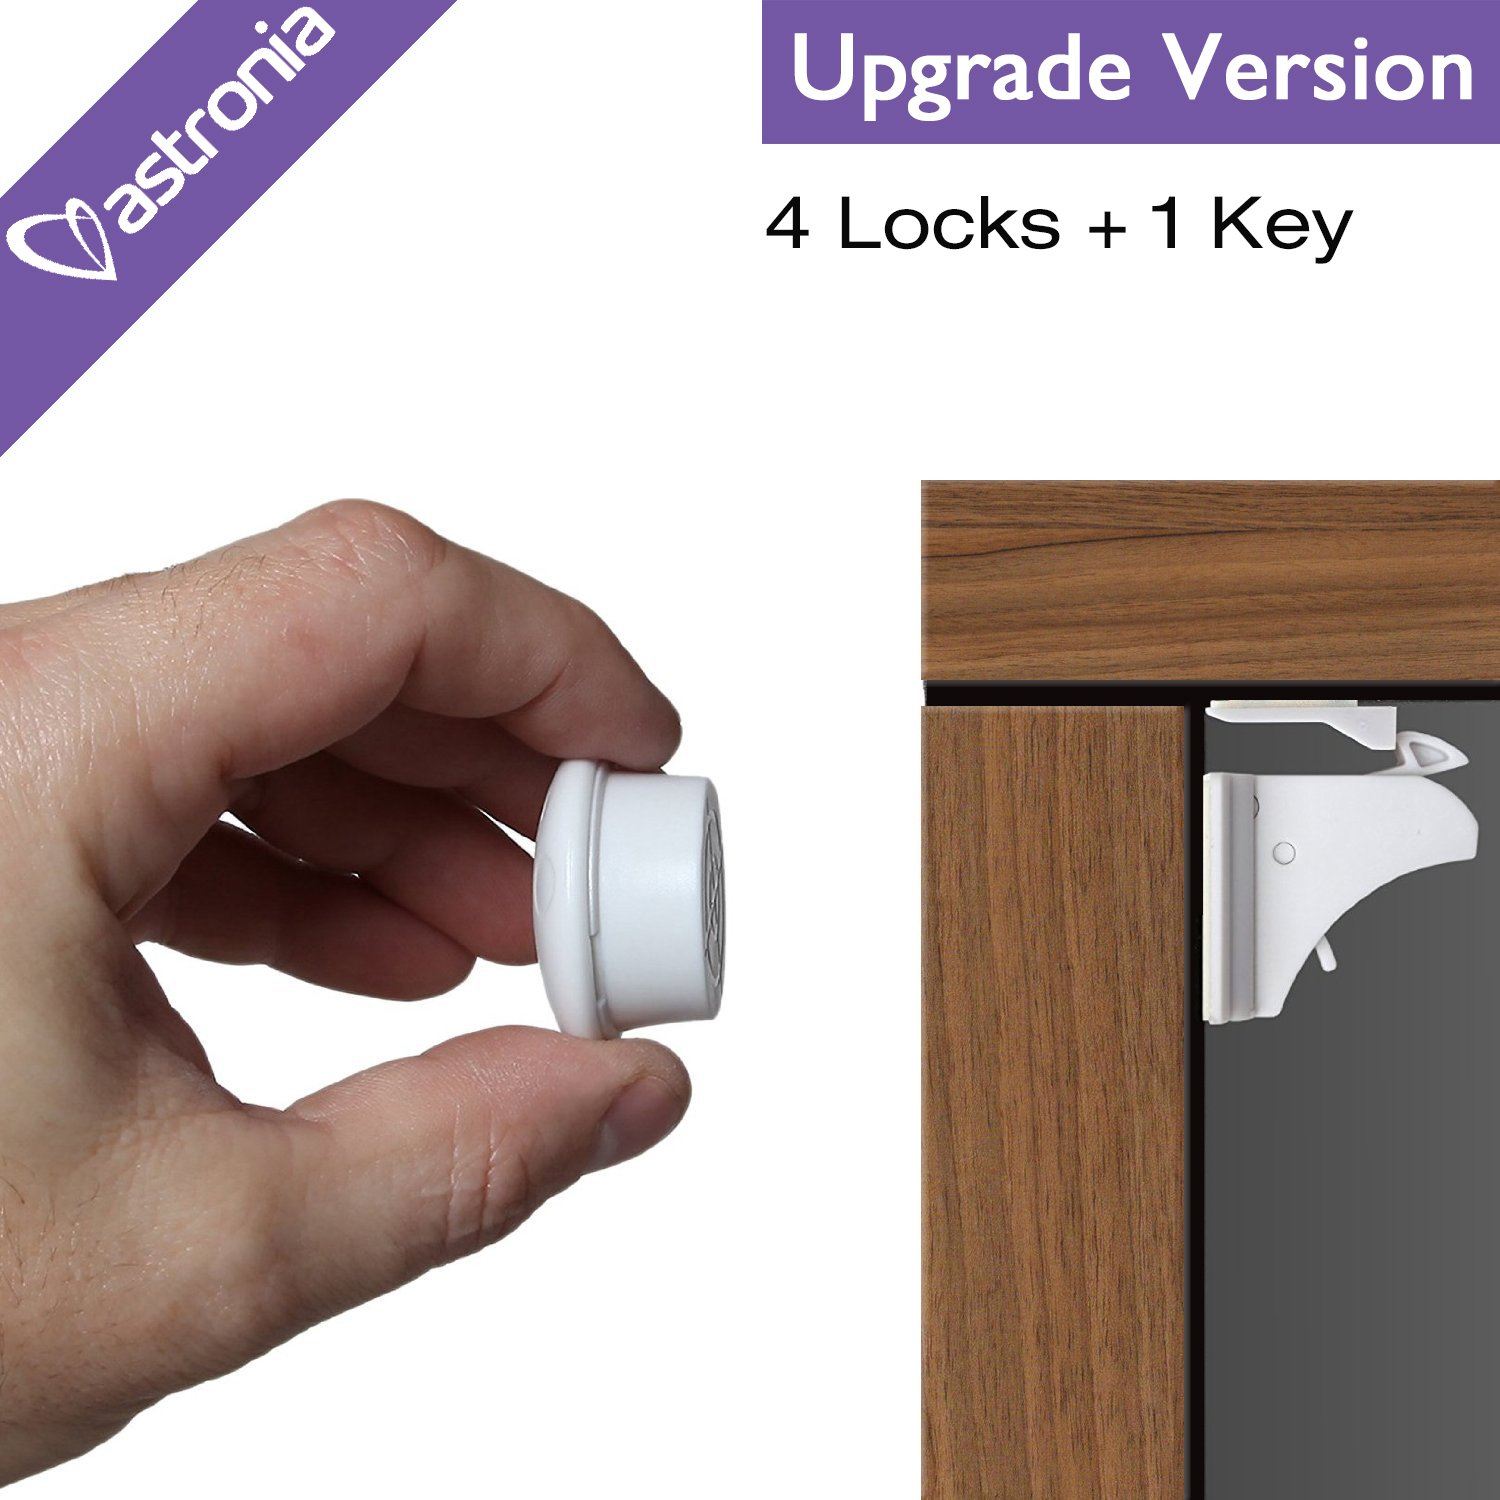 astronia Baby Safety Magnetic Cabinet Locks - No Tools Or Screws Needed, No Damage to your Furniture, (apply to your cabinets /cupboard/ drawers) 4 Locks + 1 Key